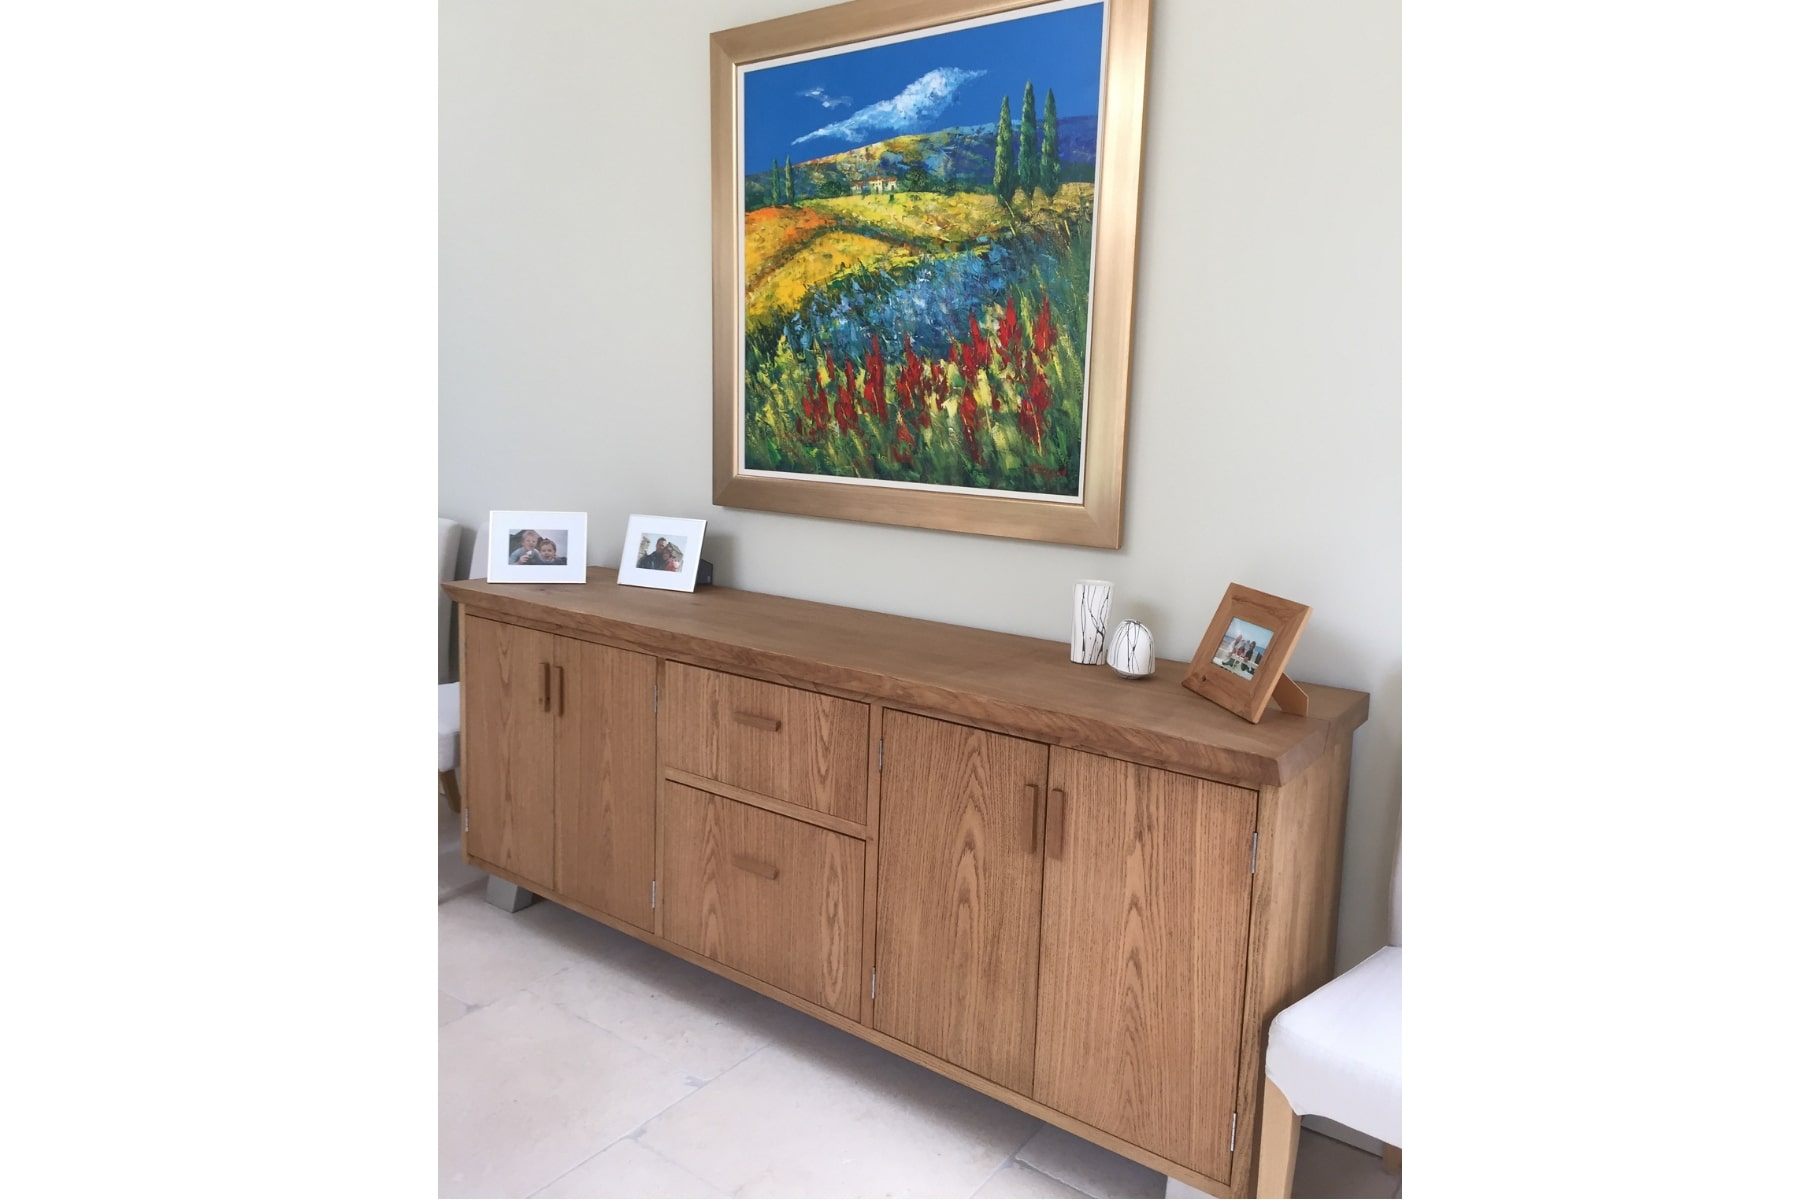 Large oak sideboard and dining table setproject 531Abacus Tables image 3